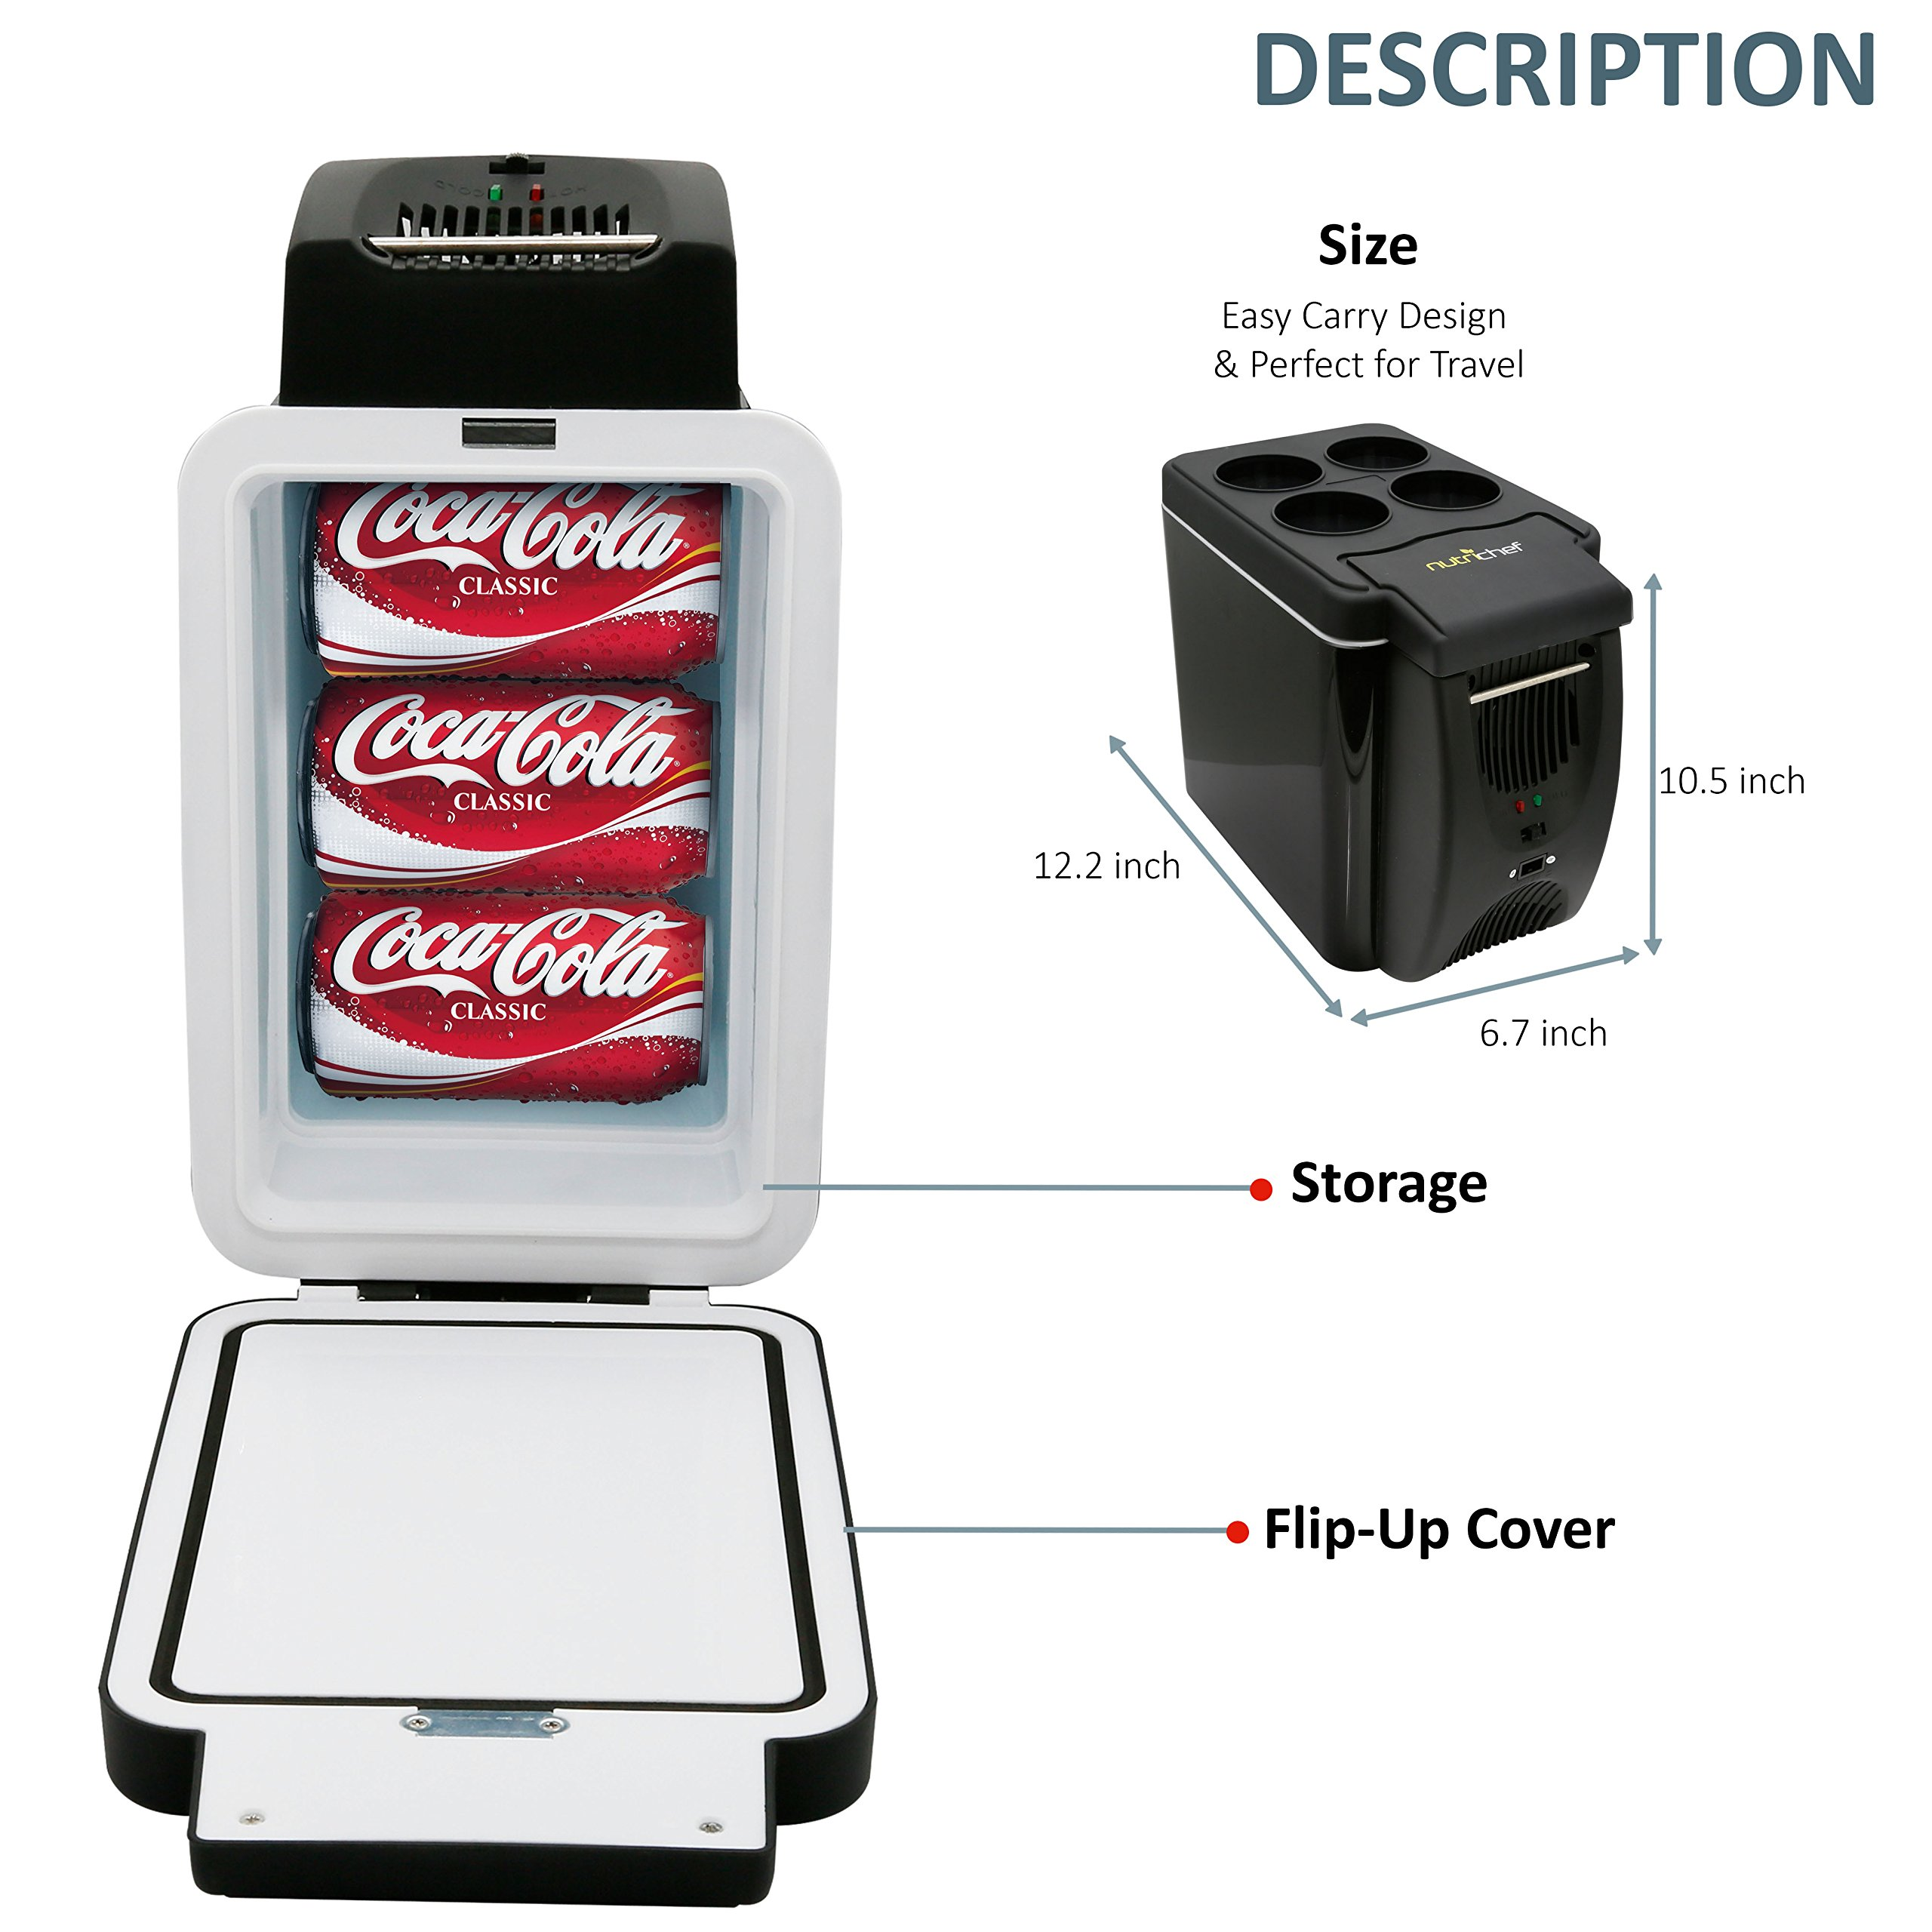 NutriChef Portable Electric Cooler Fridge / Food Warmer, 7L  Capacity | Personal Thermoelectric Dual Cooling Warming Digital Plug In Refrigerator for Car, Travel, Beach, Office by NutriChef (Image #5)